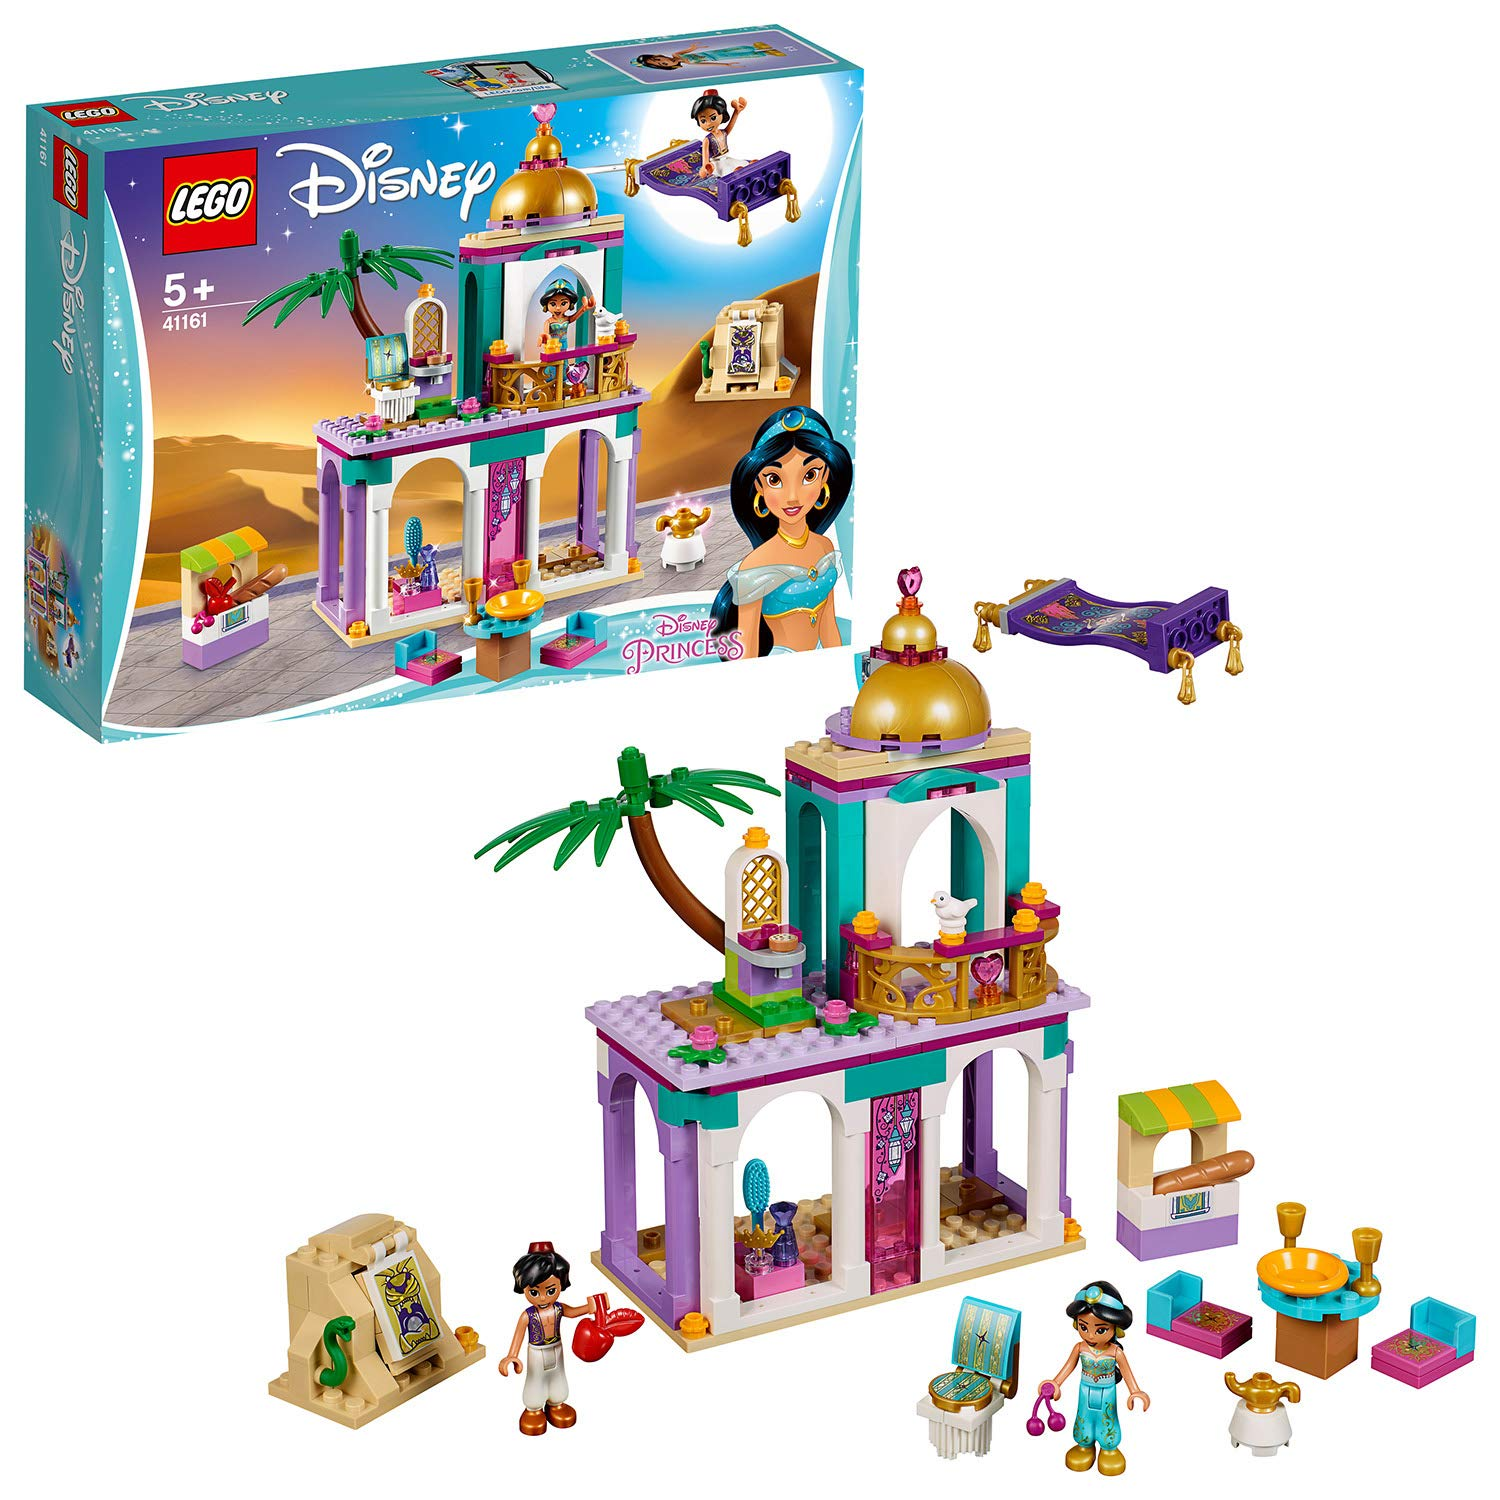 Aladdin and Jasmine's Palace Set By Lego -Lego - India - www.superherotoystore.com